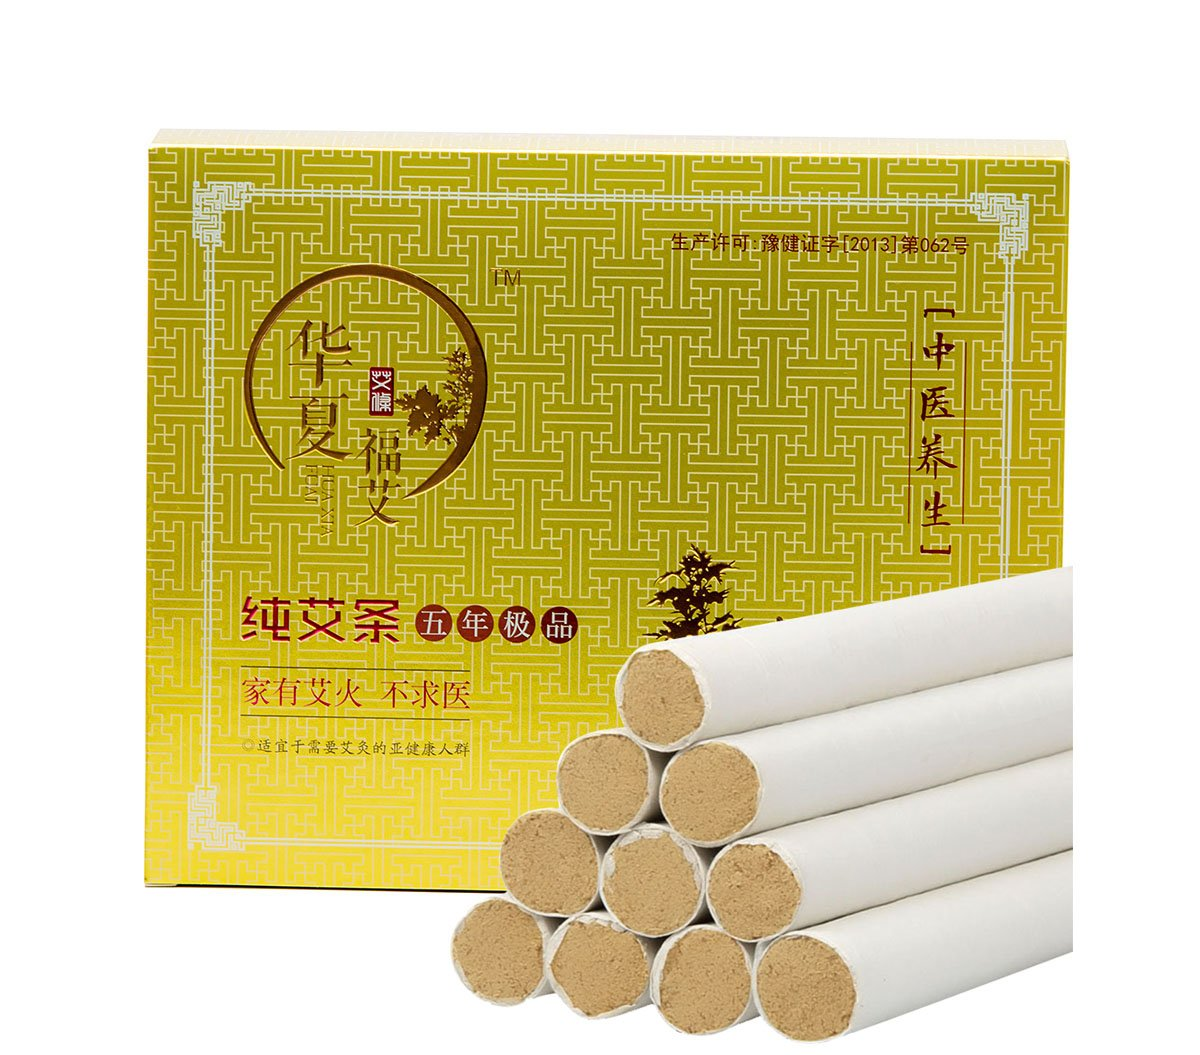 Moxa Sticks, High Purity 35:1 Five Chen Moxa Rolls Bar for Mild Moxibustion(20 pcs) by Huaxiafuai